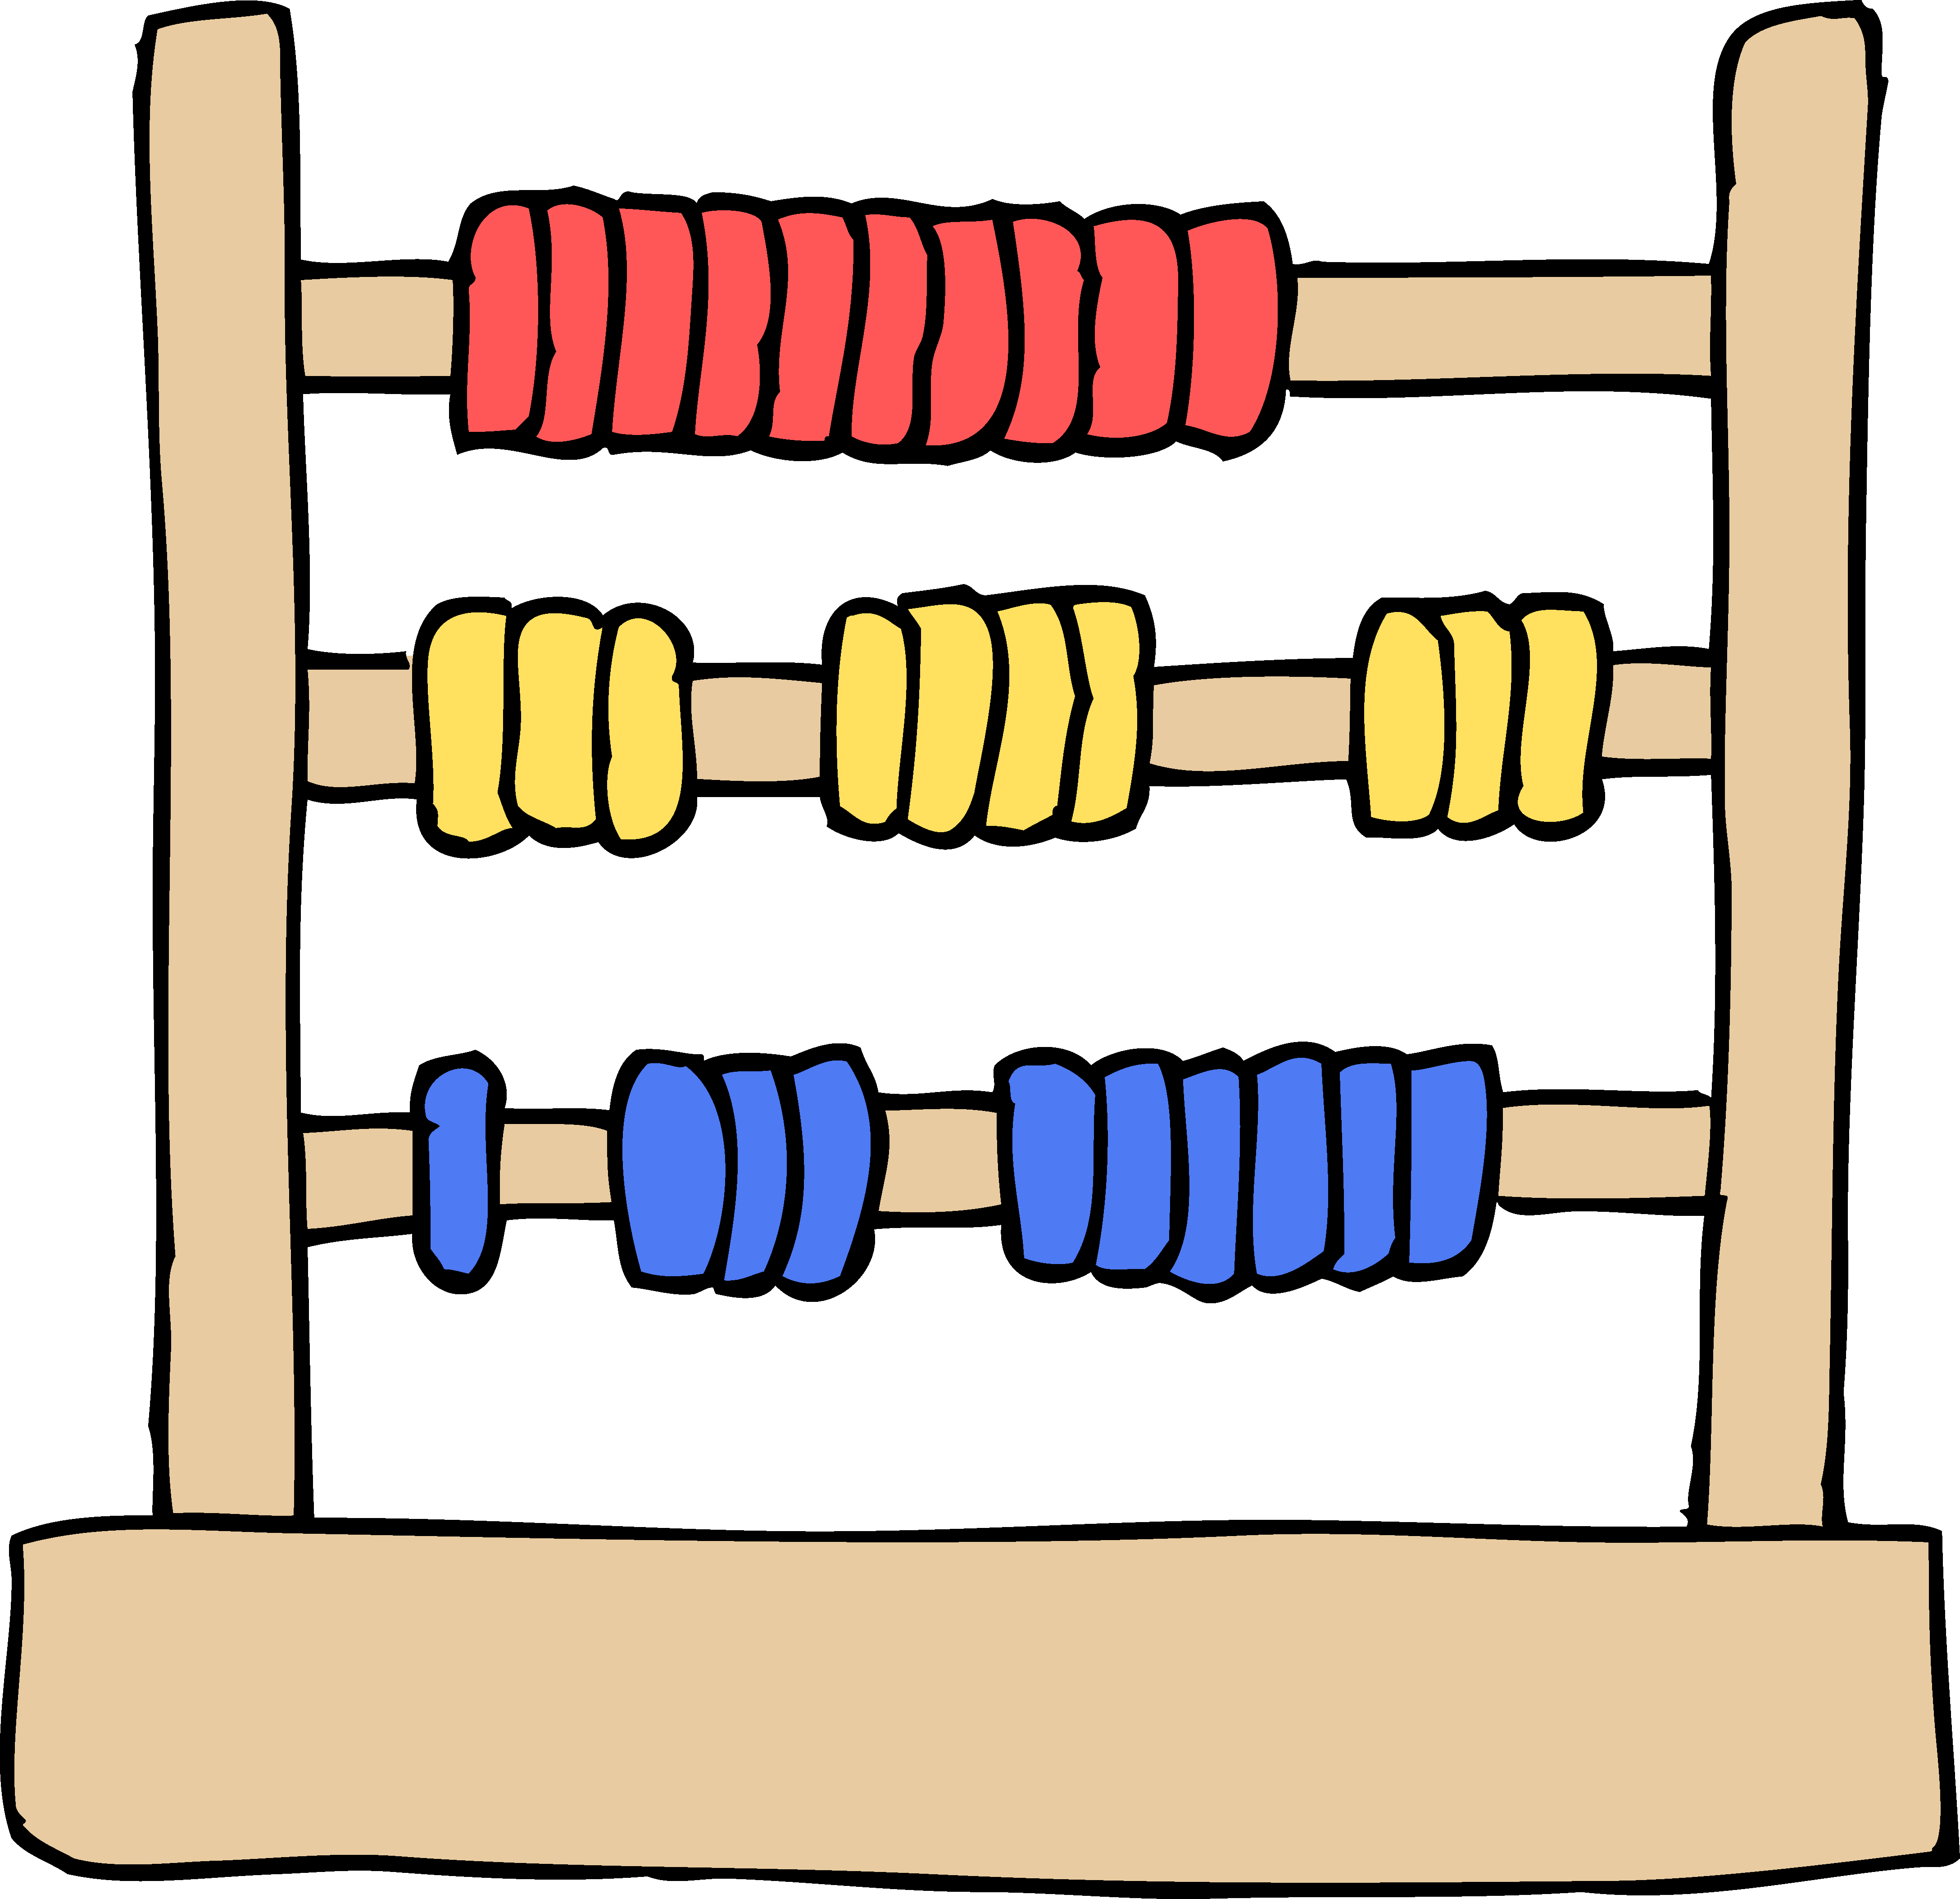 Addition abacus clipart clipart images gallery for free.